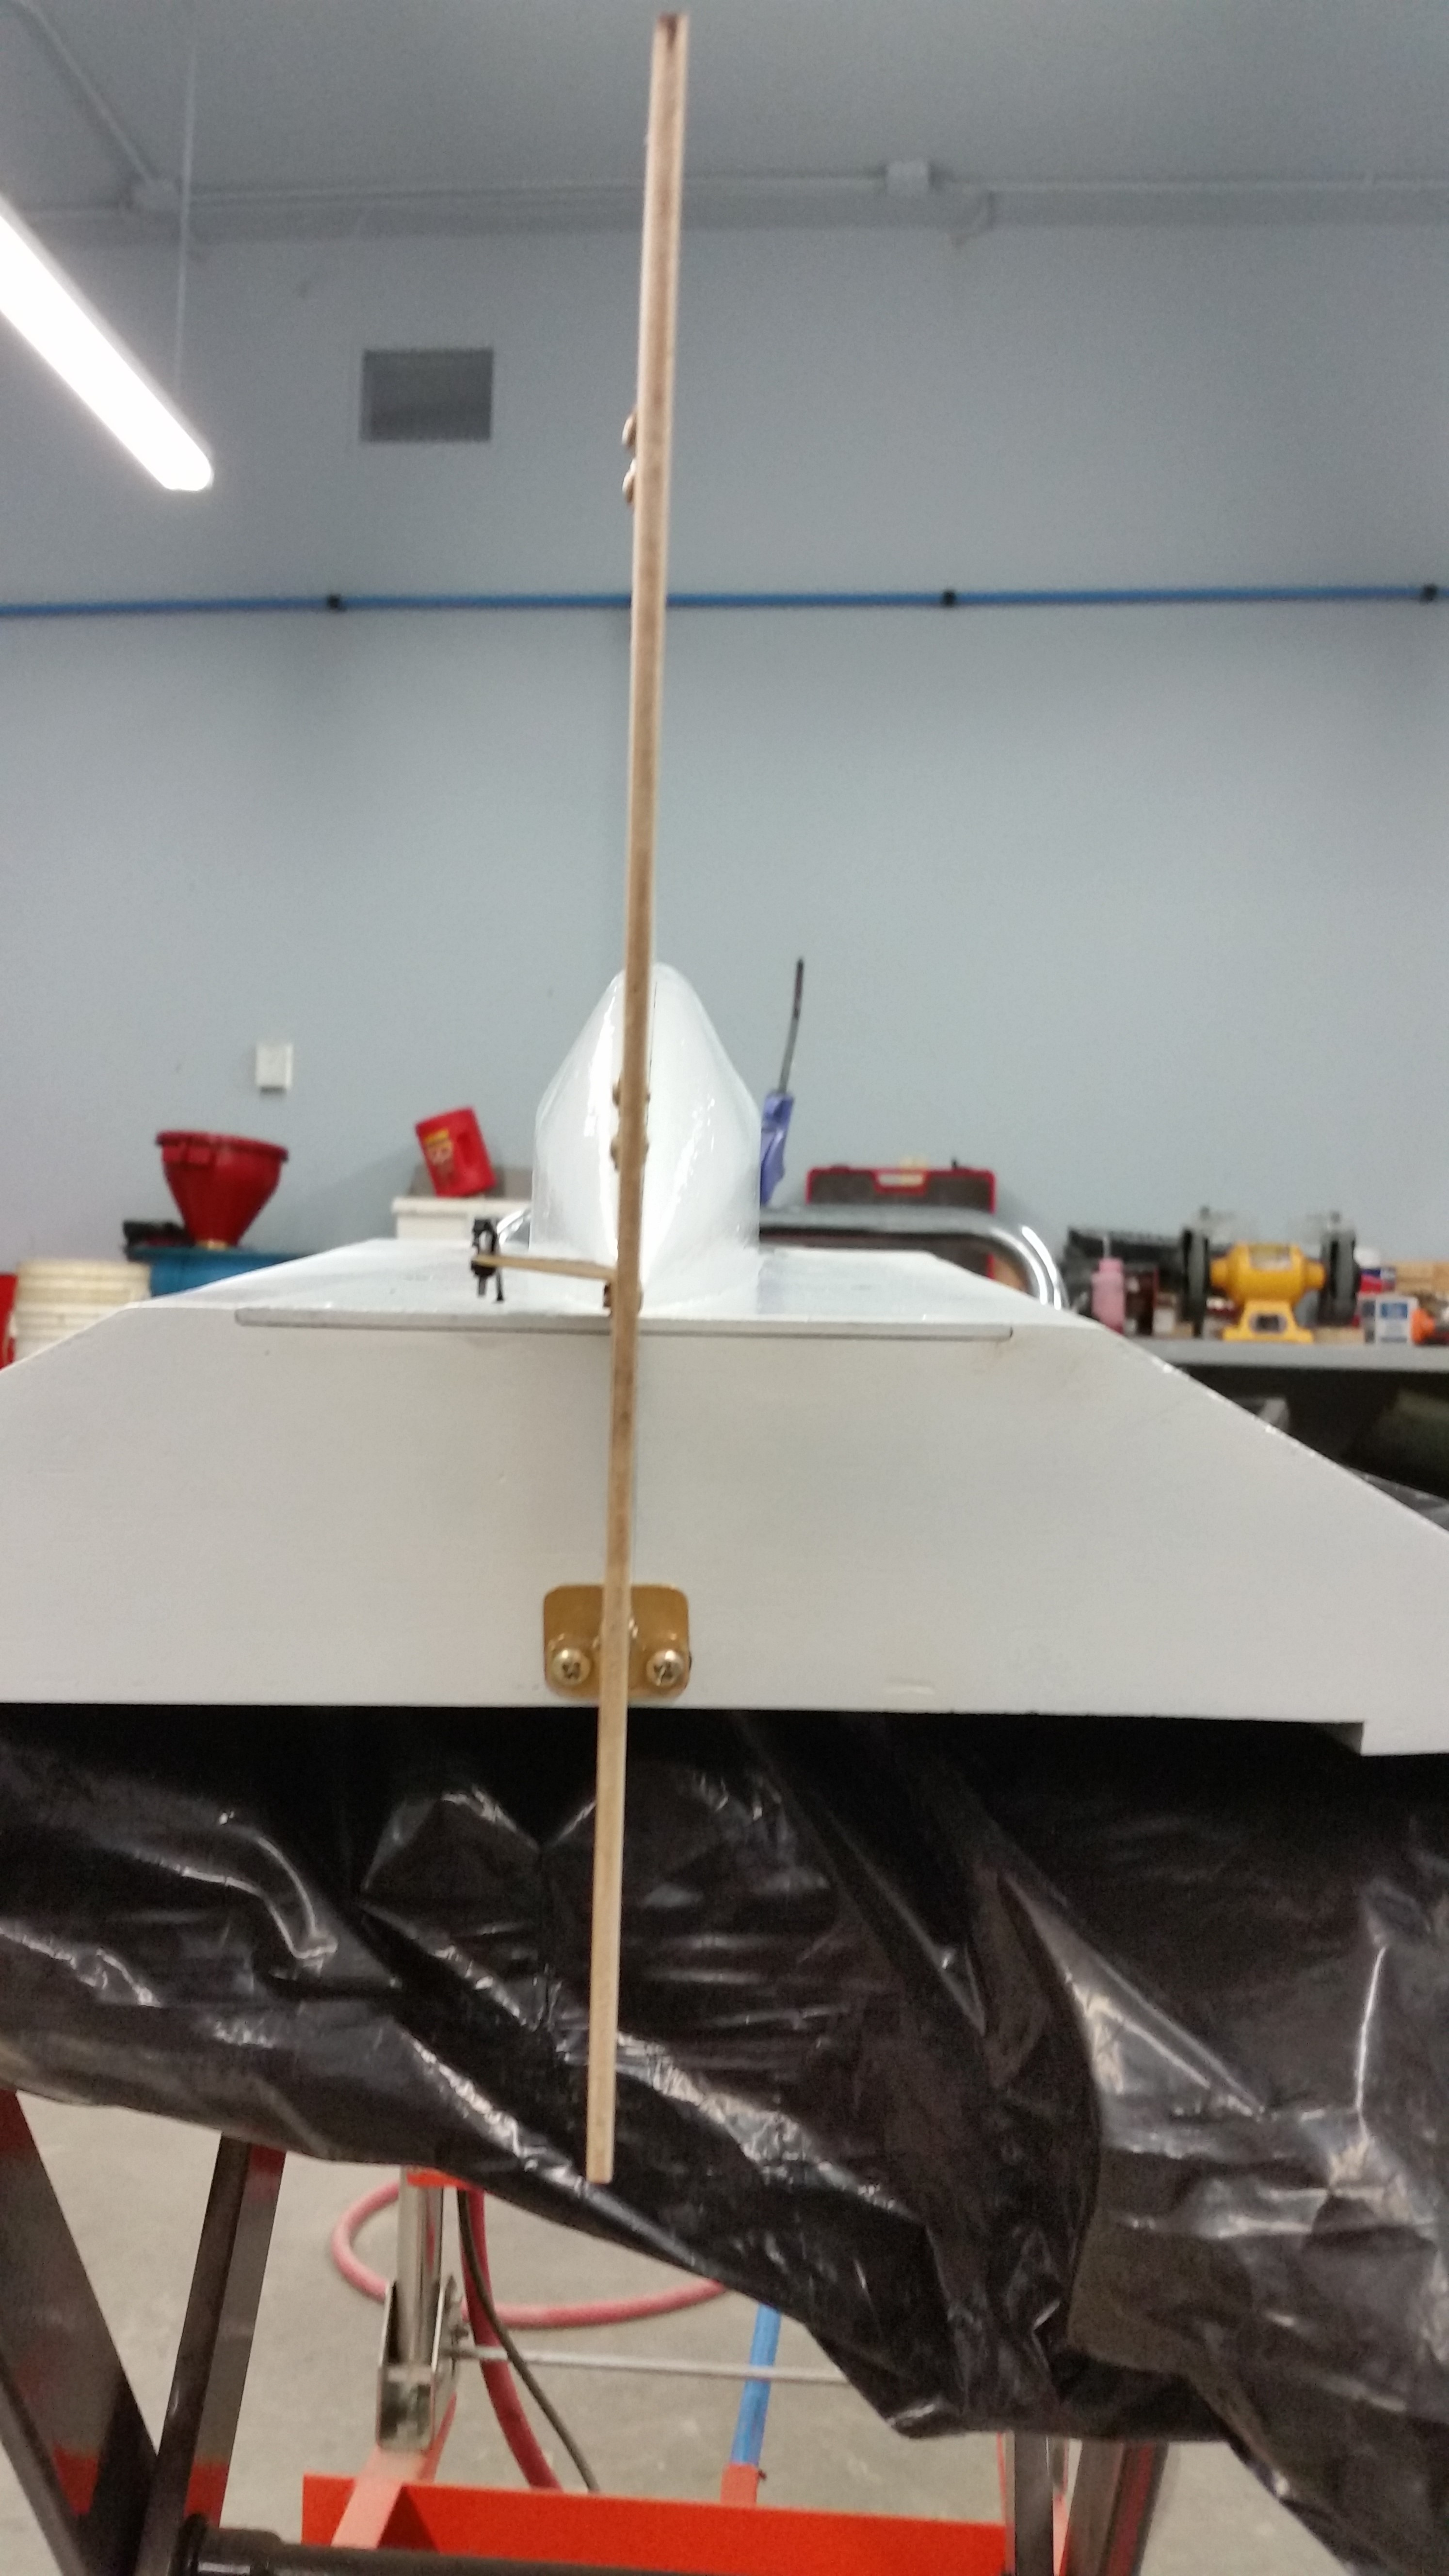 Click image for larger version  Name:rudder2.jpg Views:190 Size:1.65 MB ID:2119544